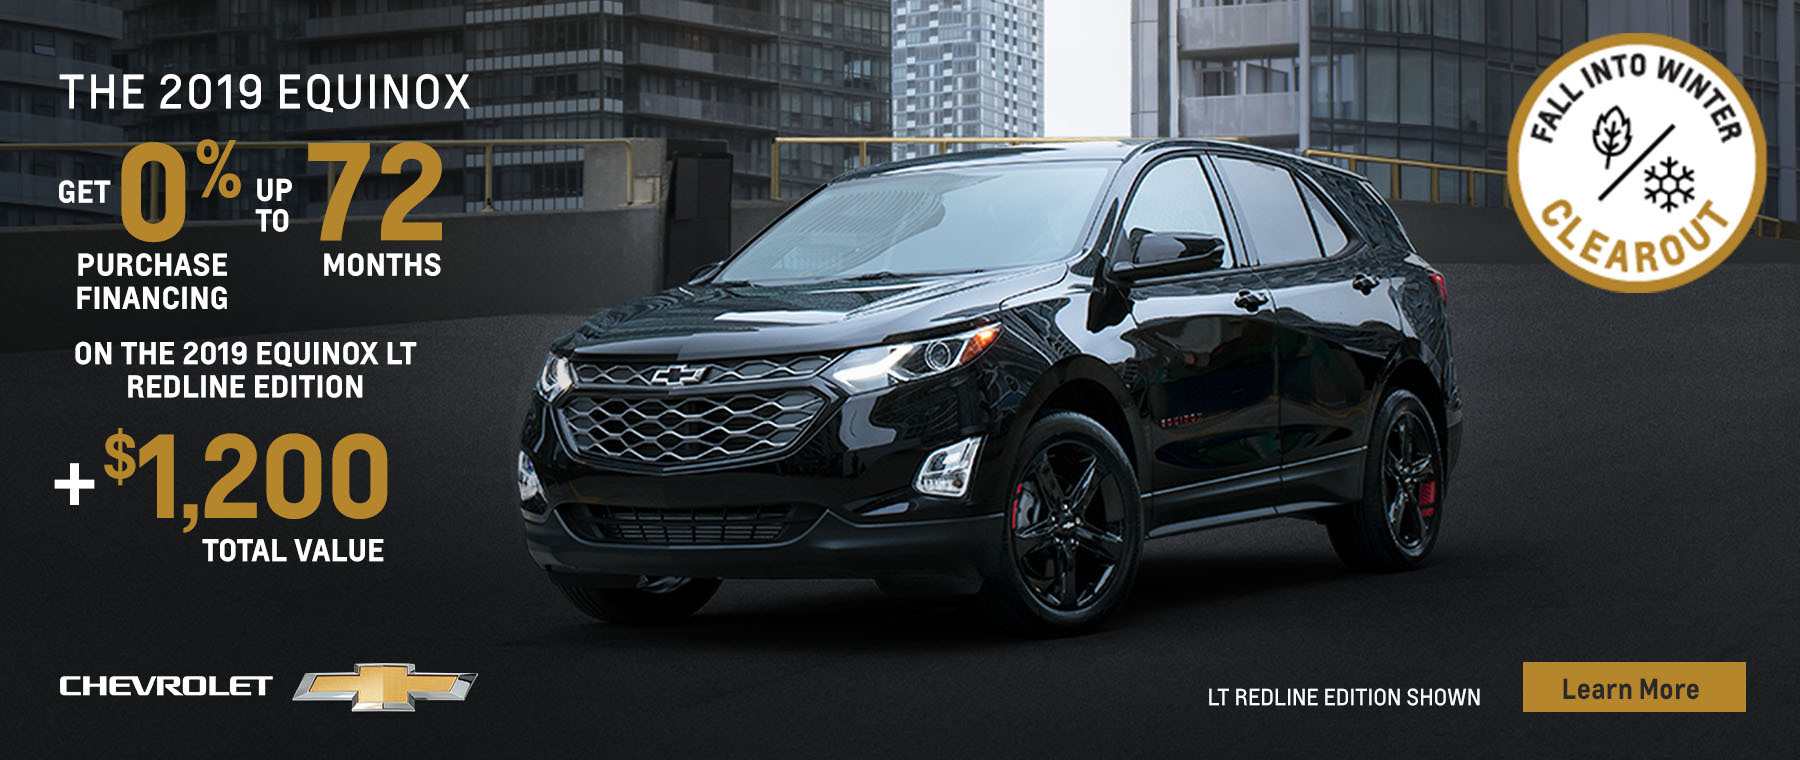 2019 Equinox LT Redline Edition - Fall Into Winter Clearout